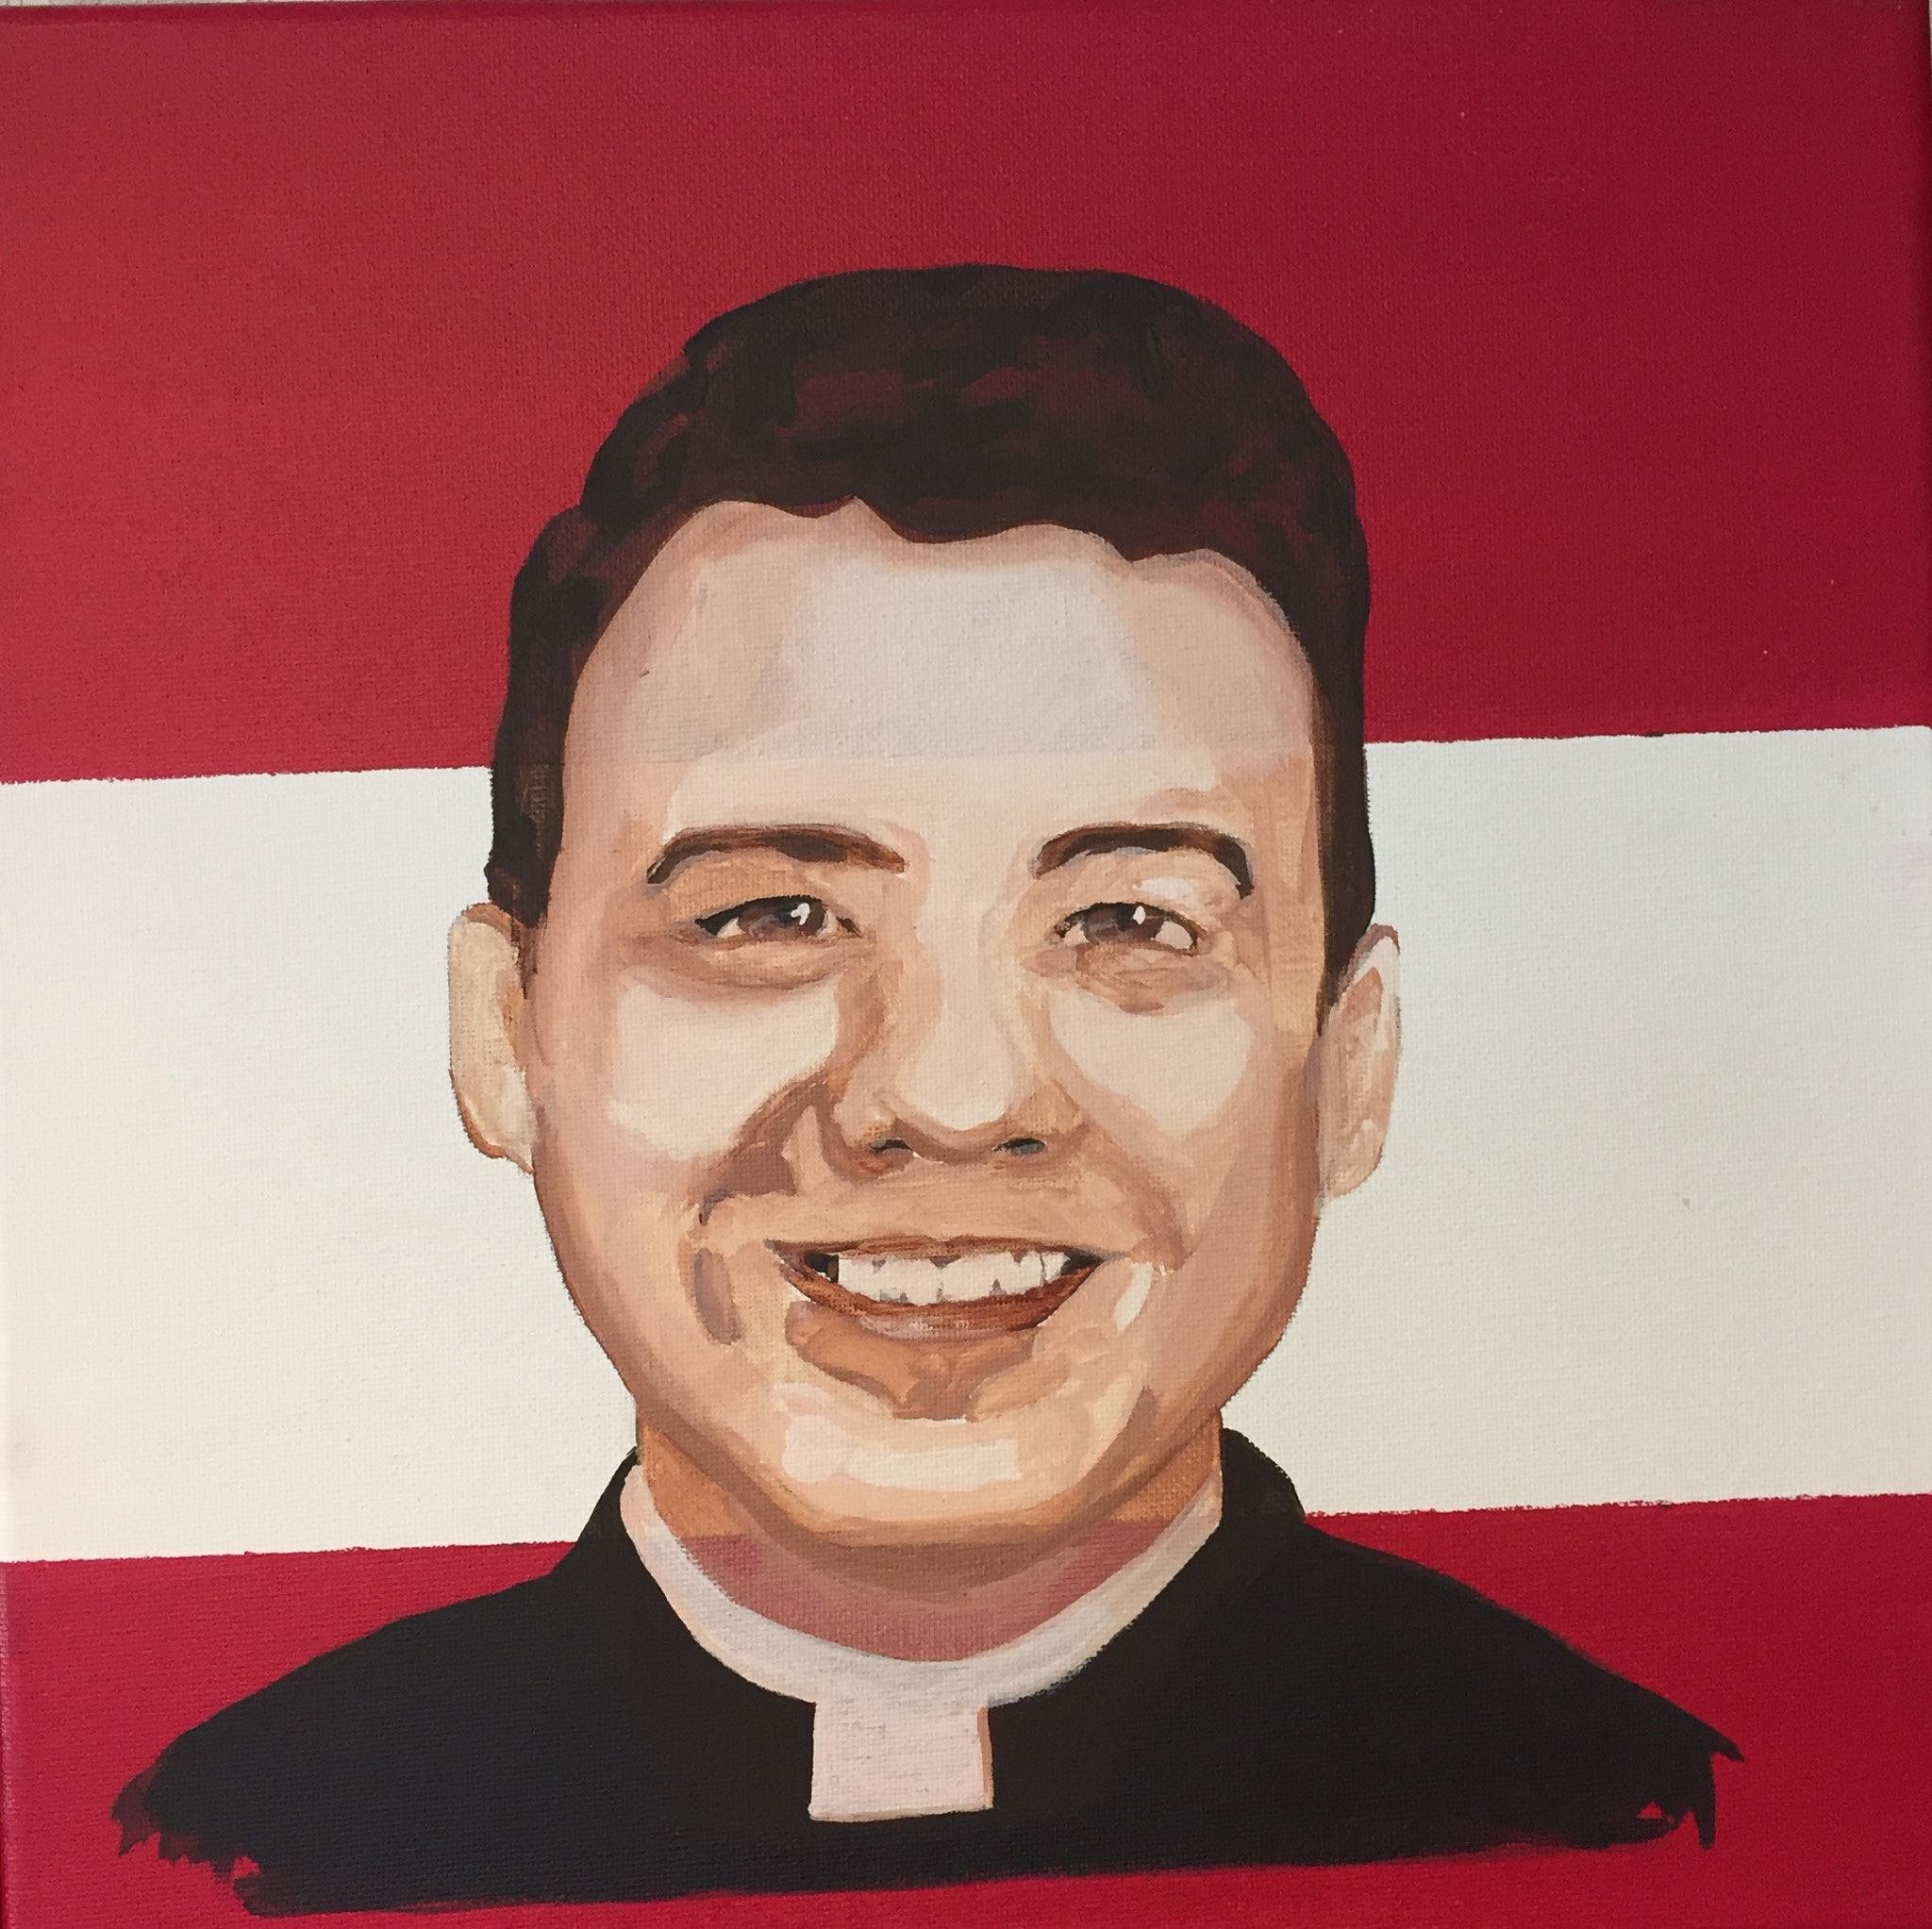 Father Ray. DACA promoter of development and inclusion of the Latino